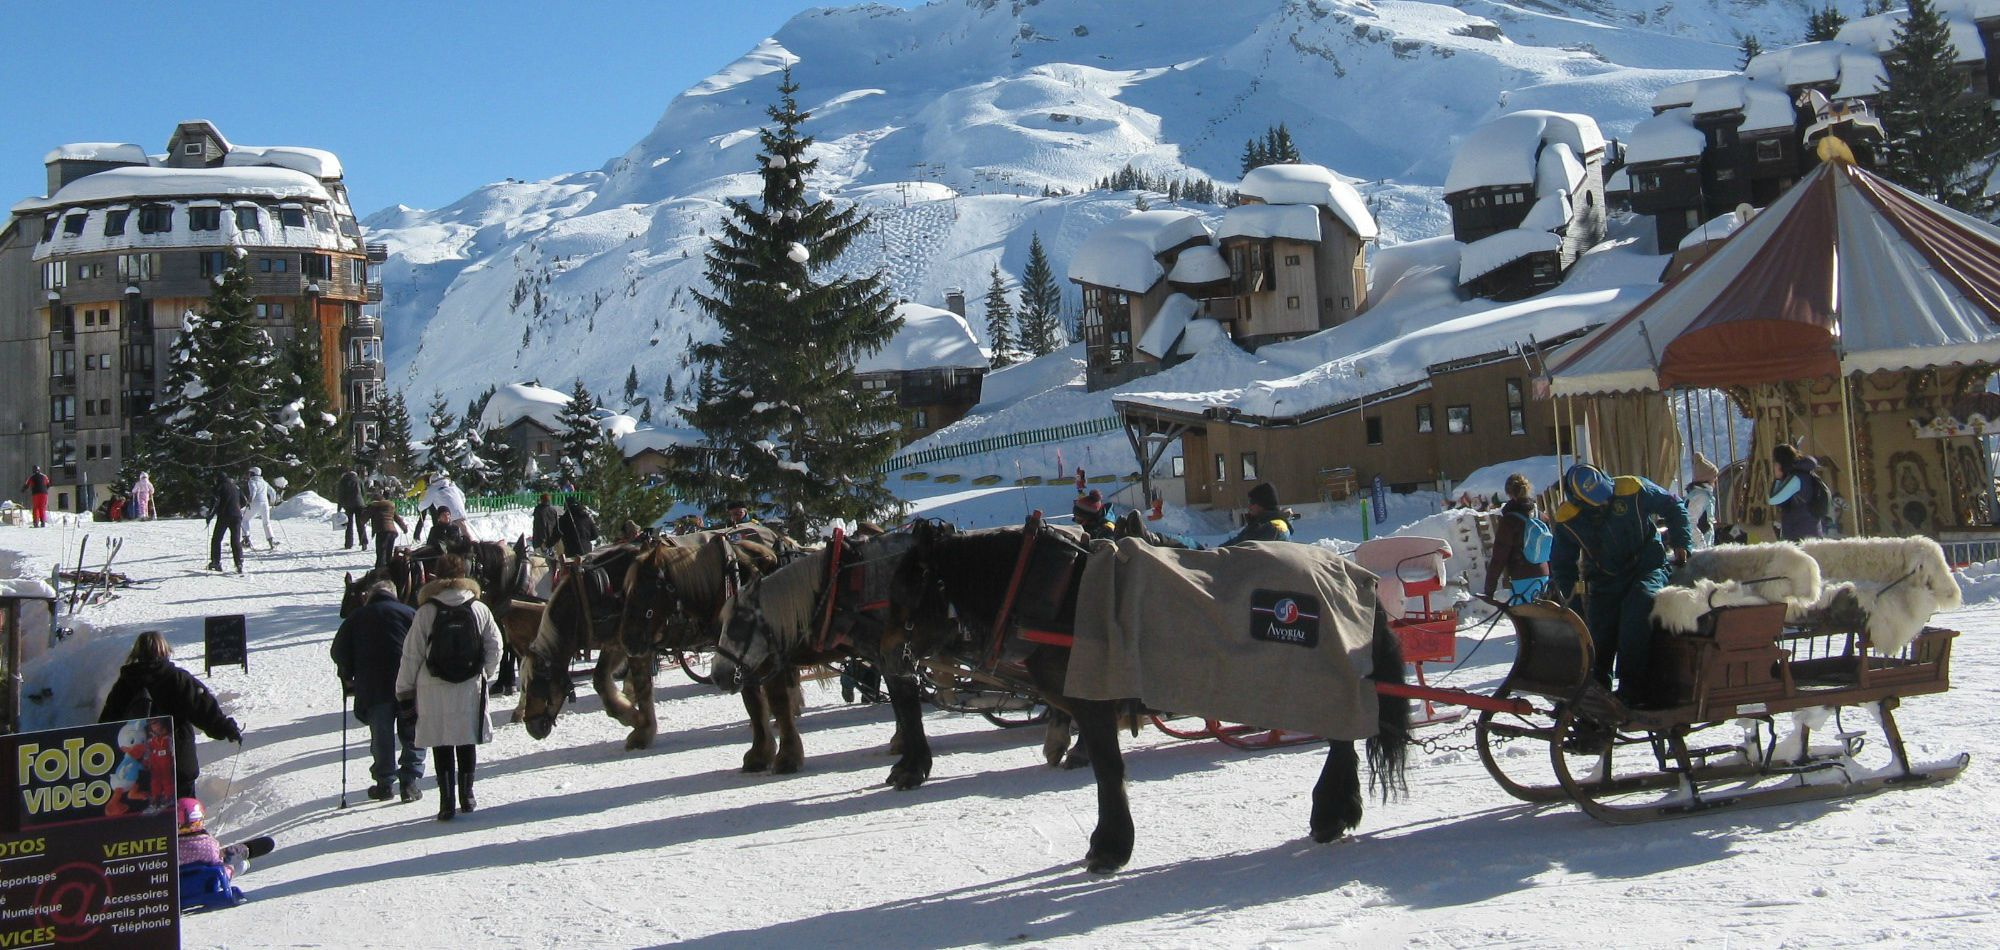 Getting to Avoriaz